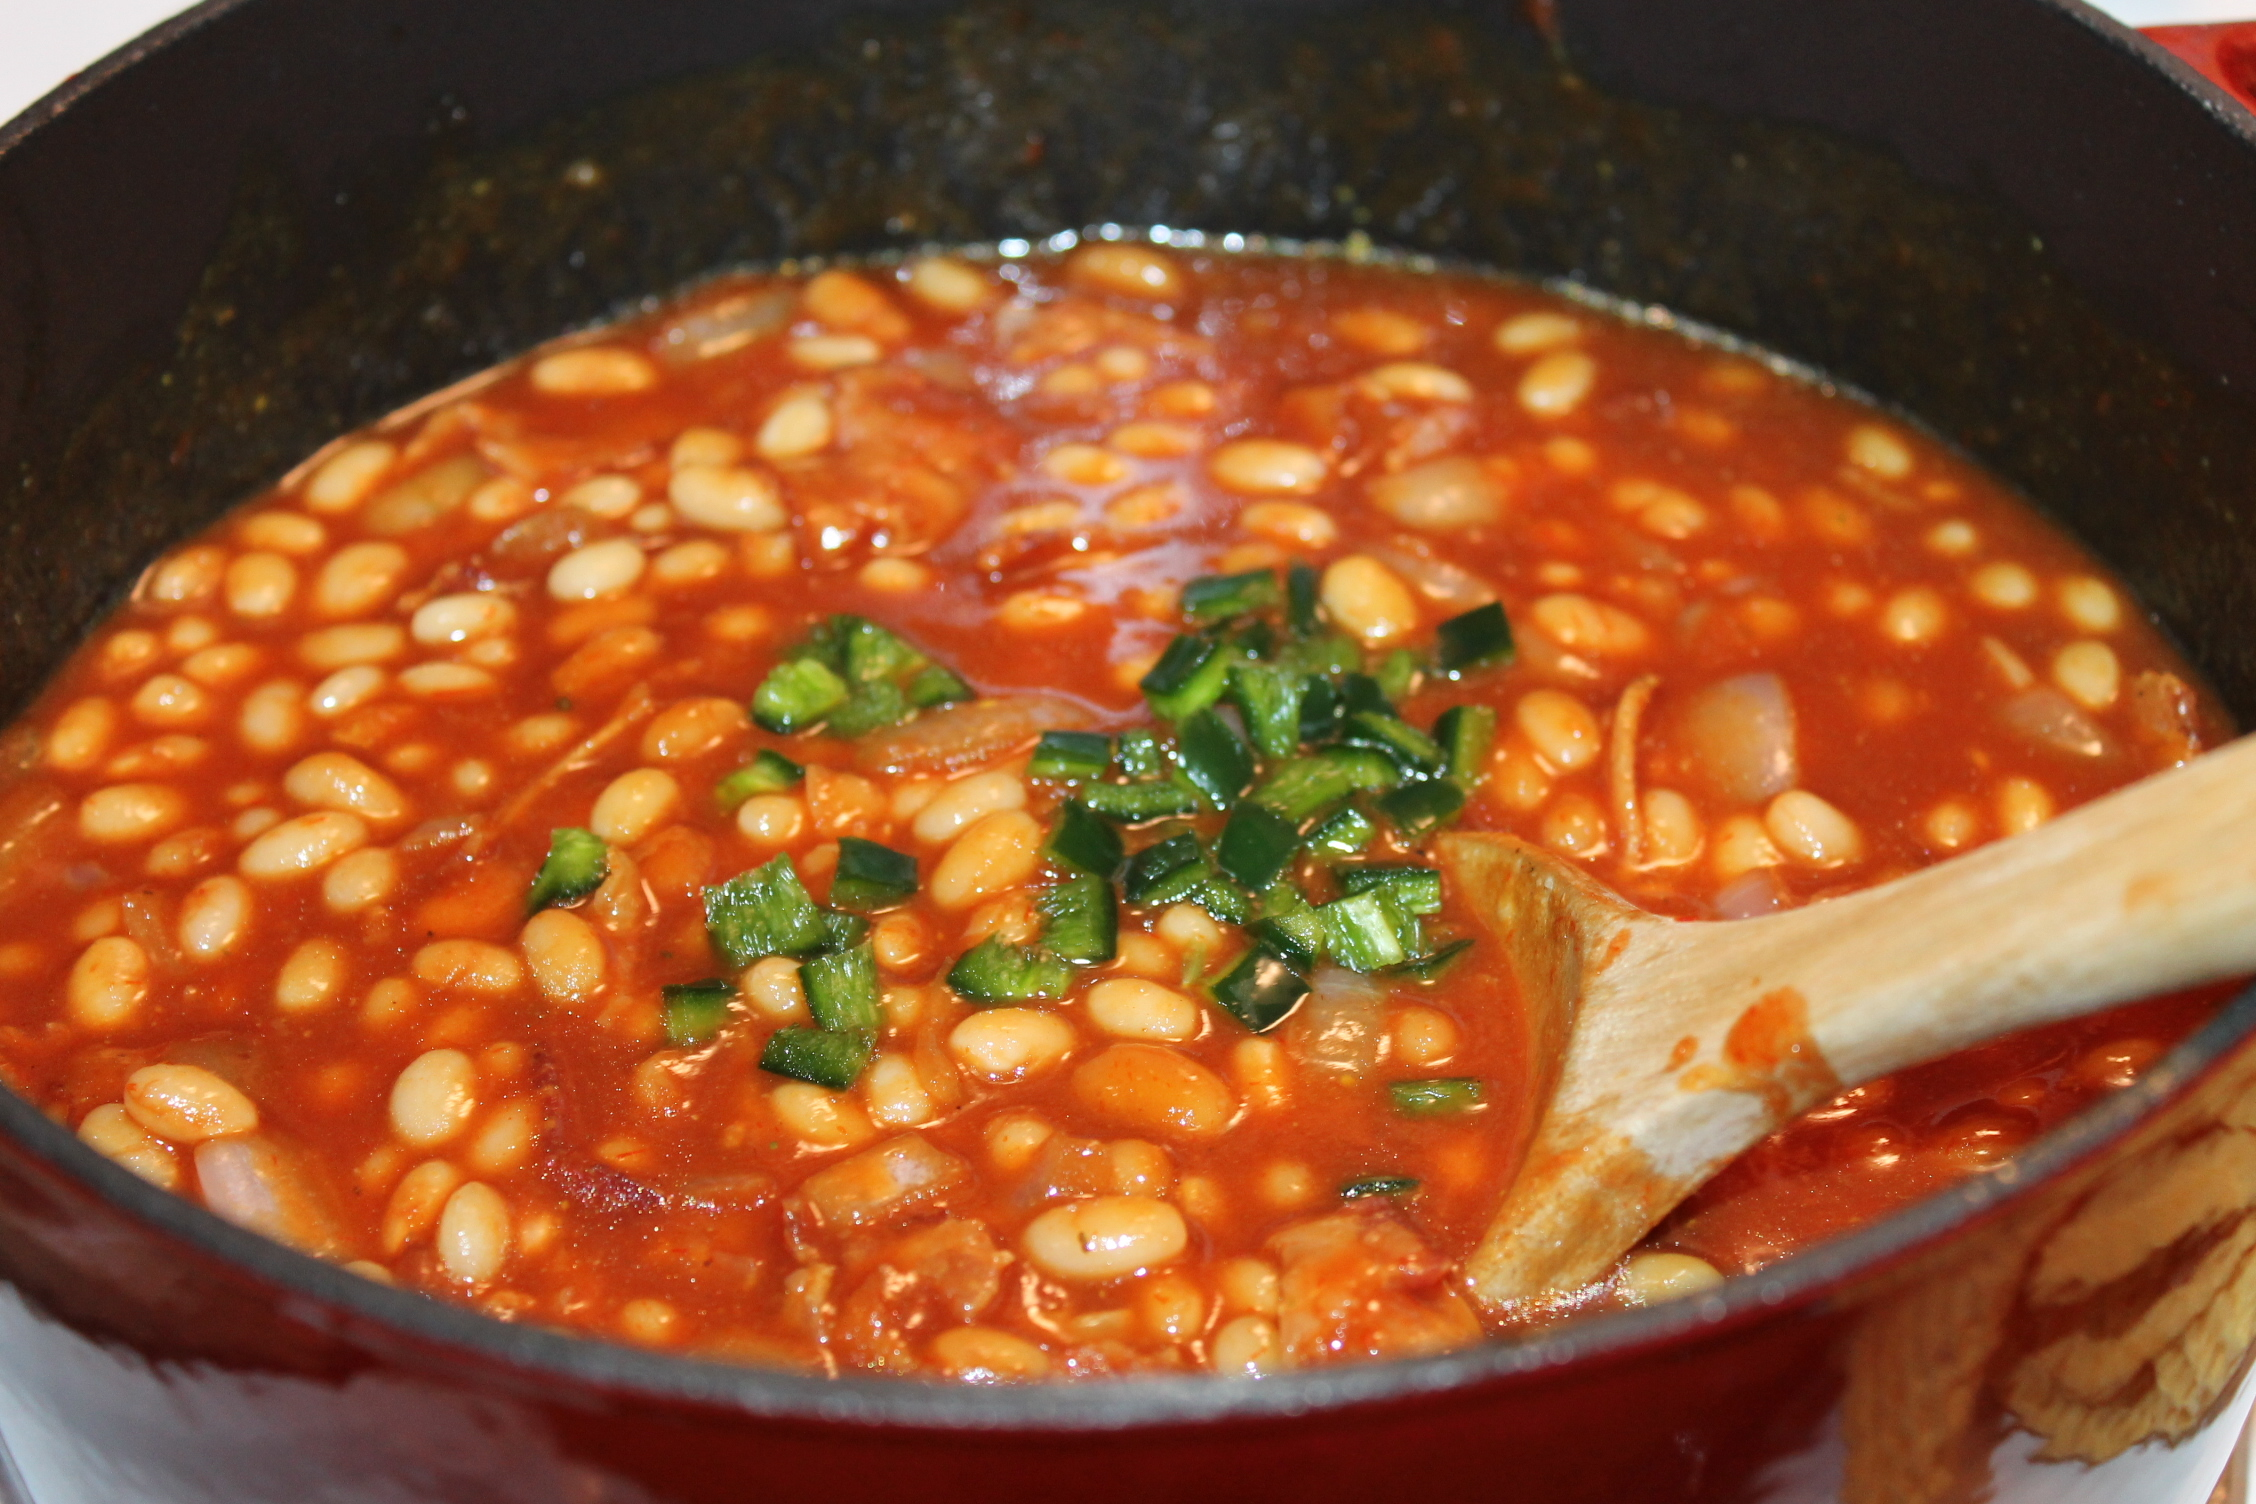 Baked Beans made from scratch